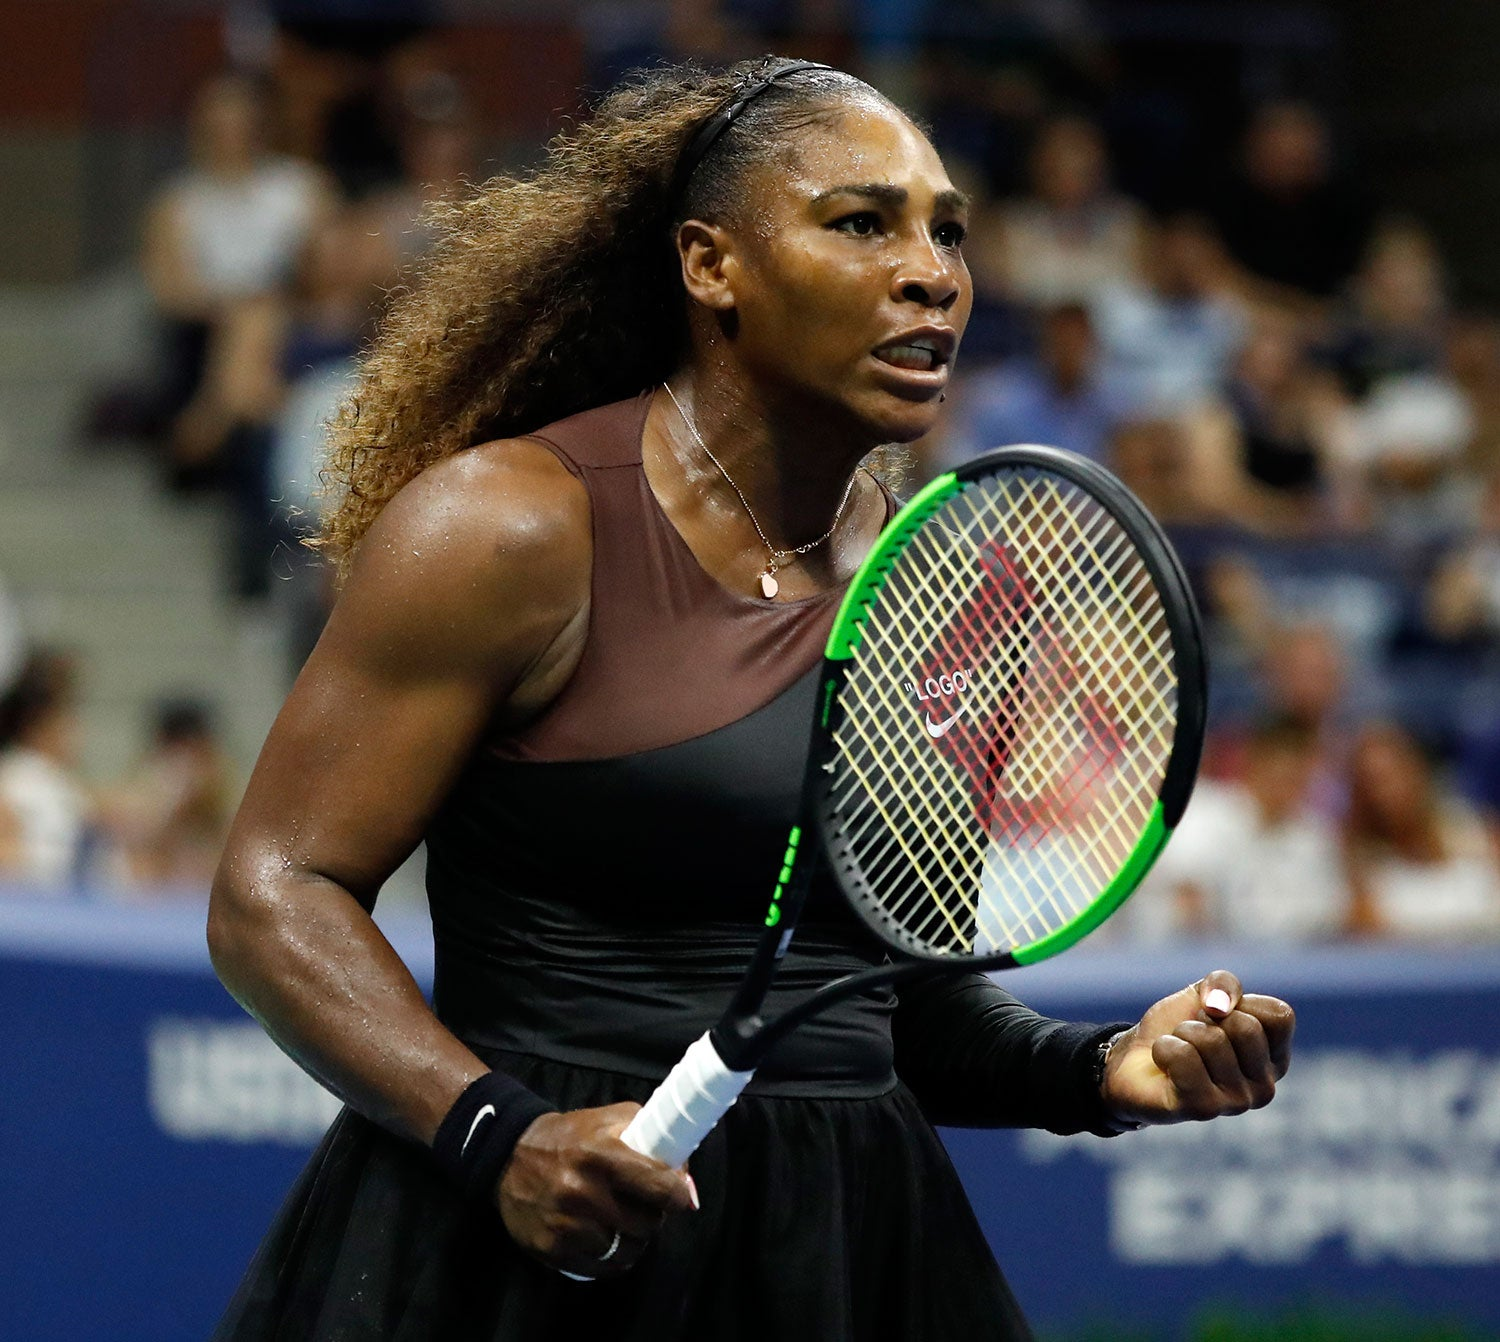 Serena Williams na meia-final do US Open